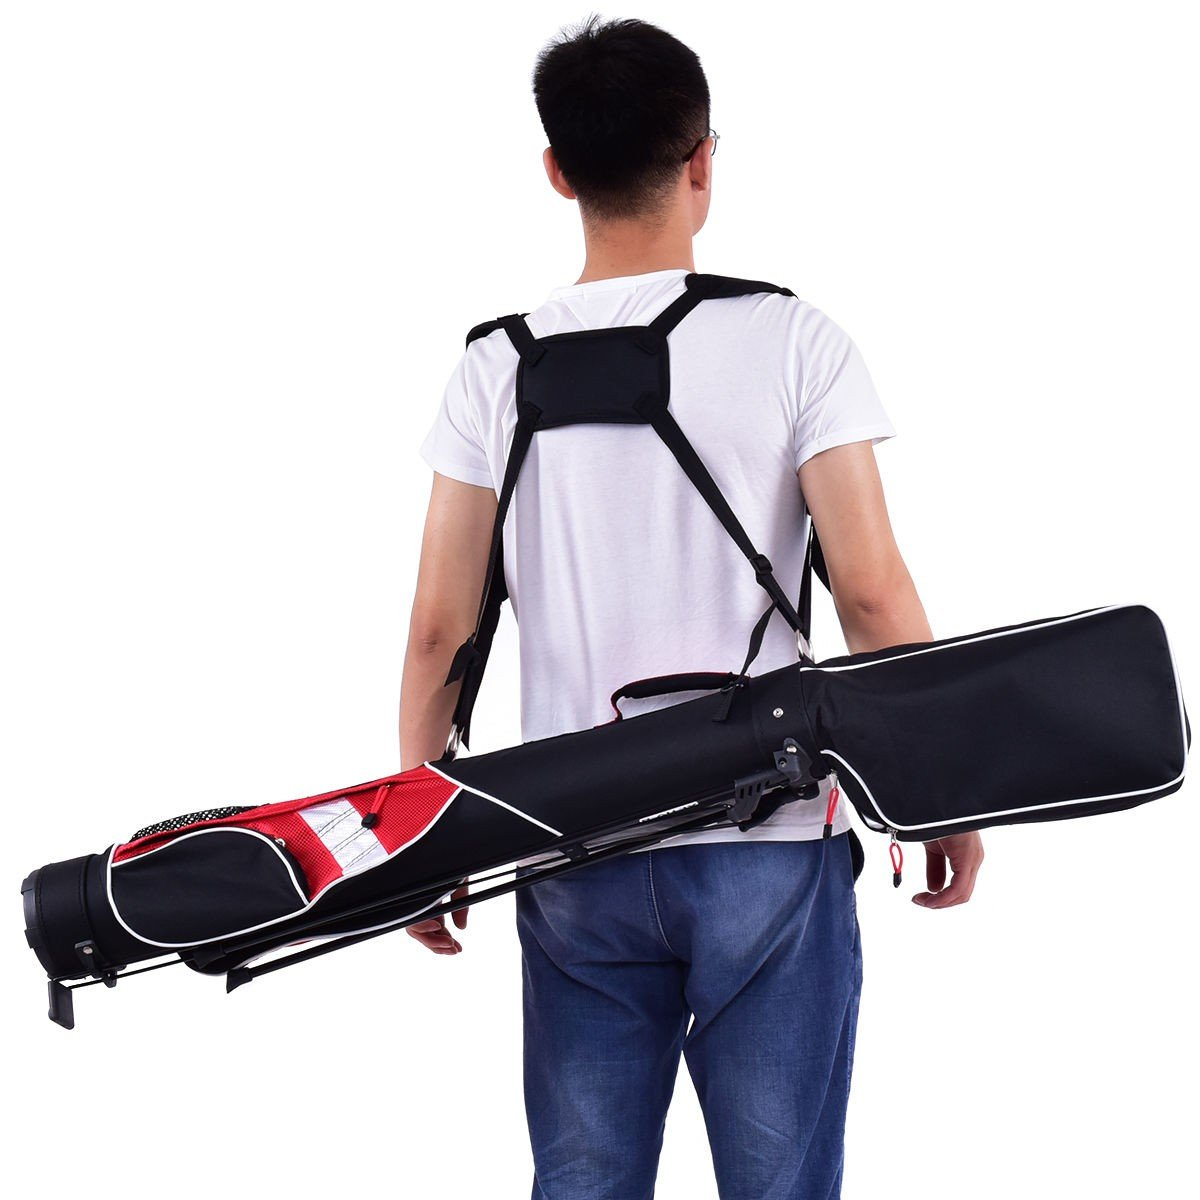 5'' Sunday Golf Bag Stand 7 Clubs Carry Pockets - By Choice Products by By Choice Products (Image #5)